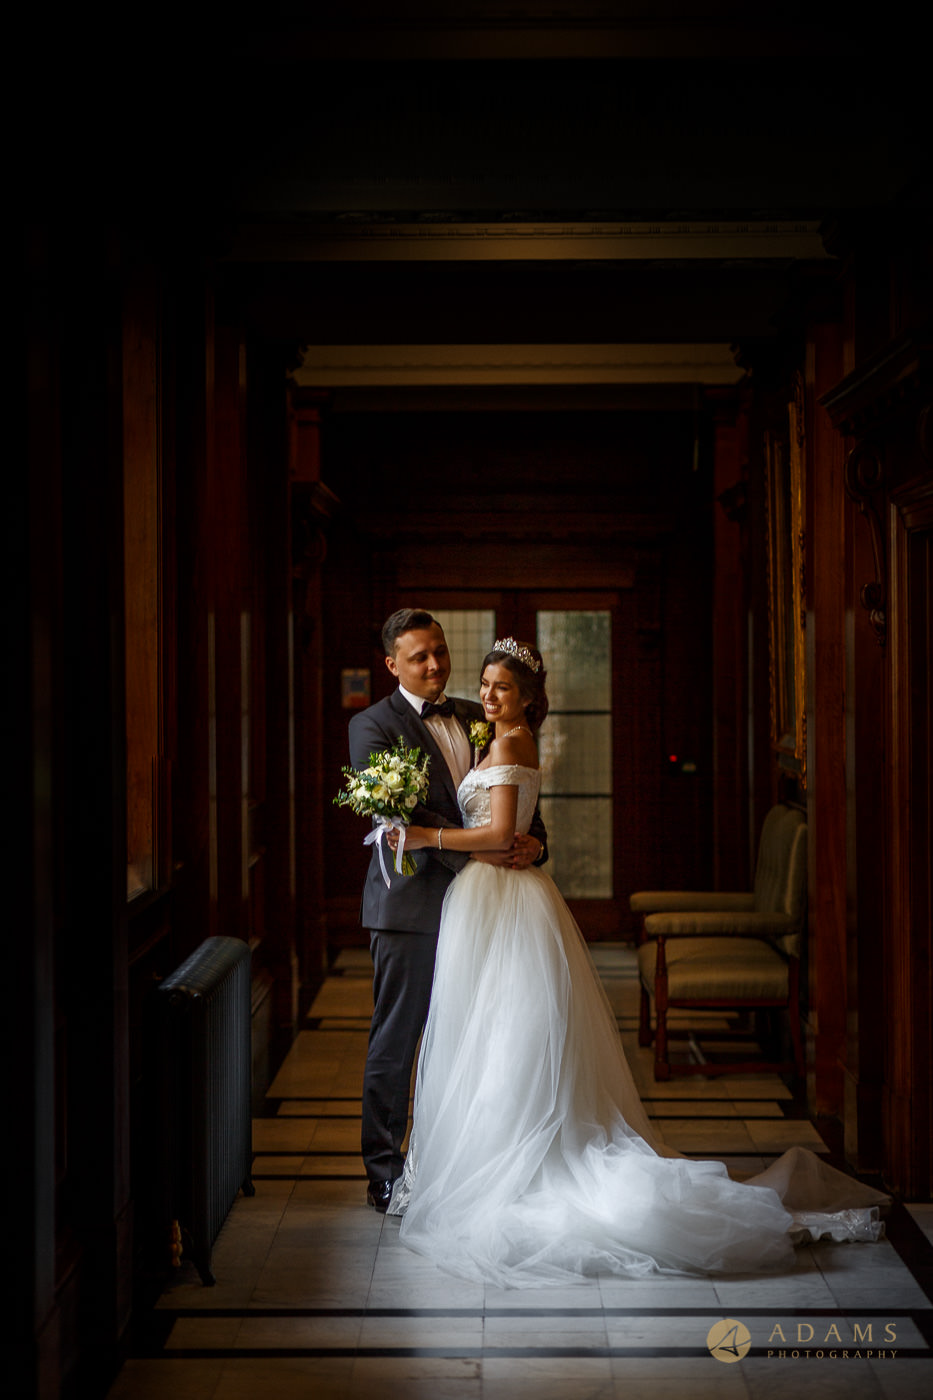 Bride and groom posing for their photo in the hall